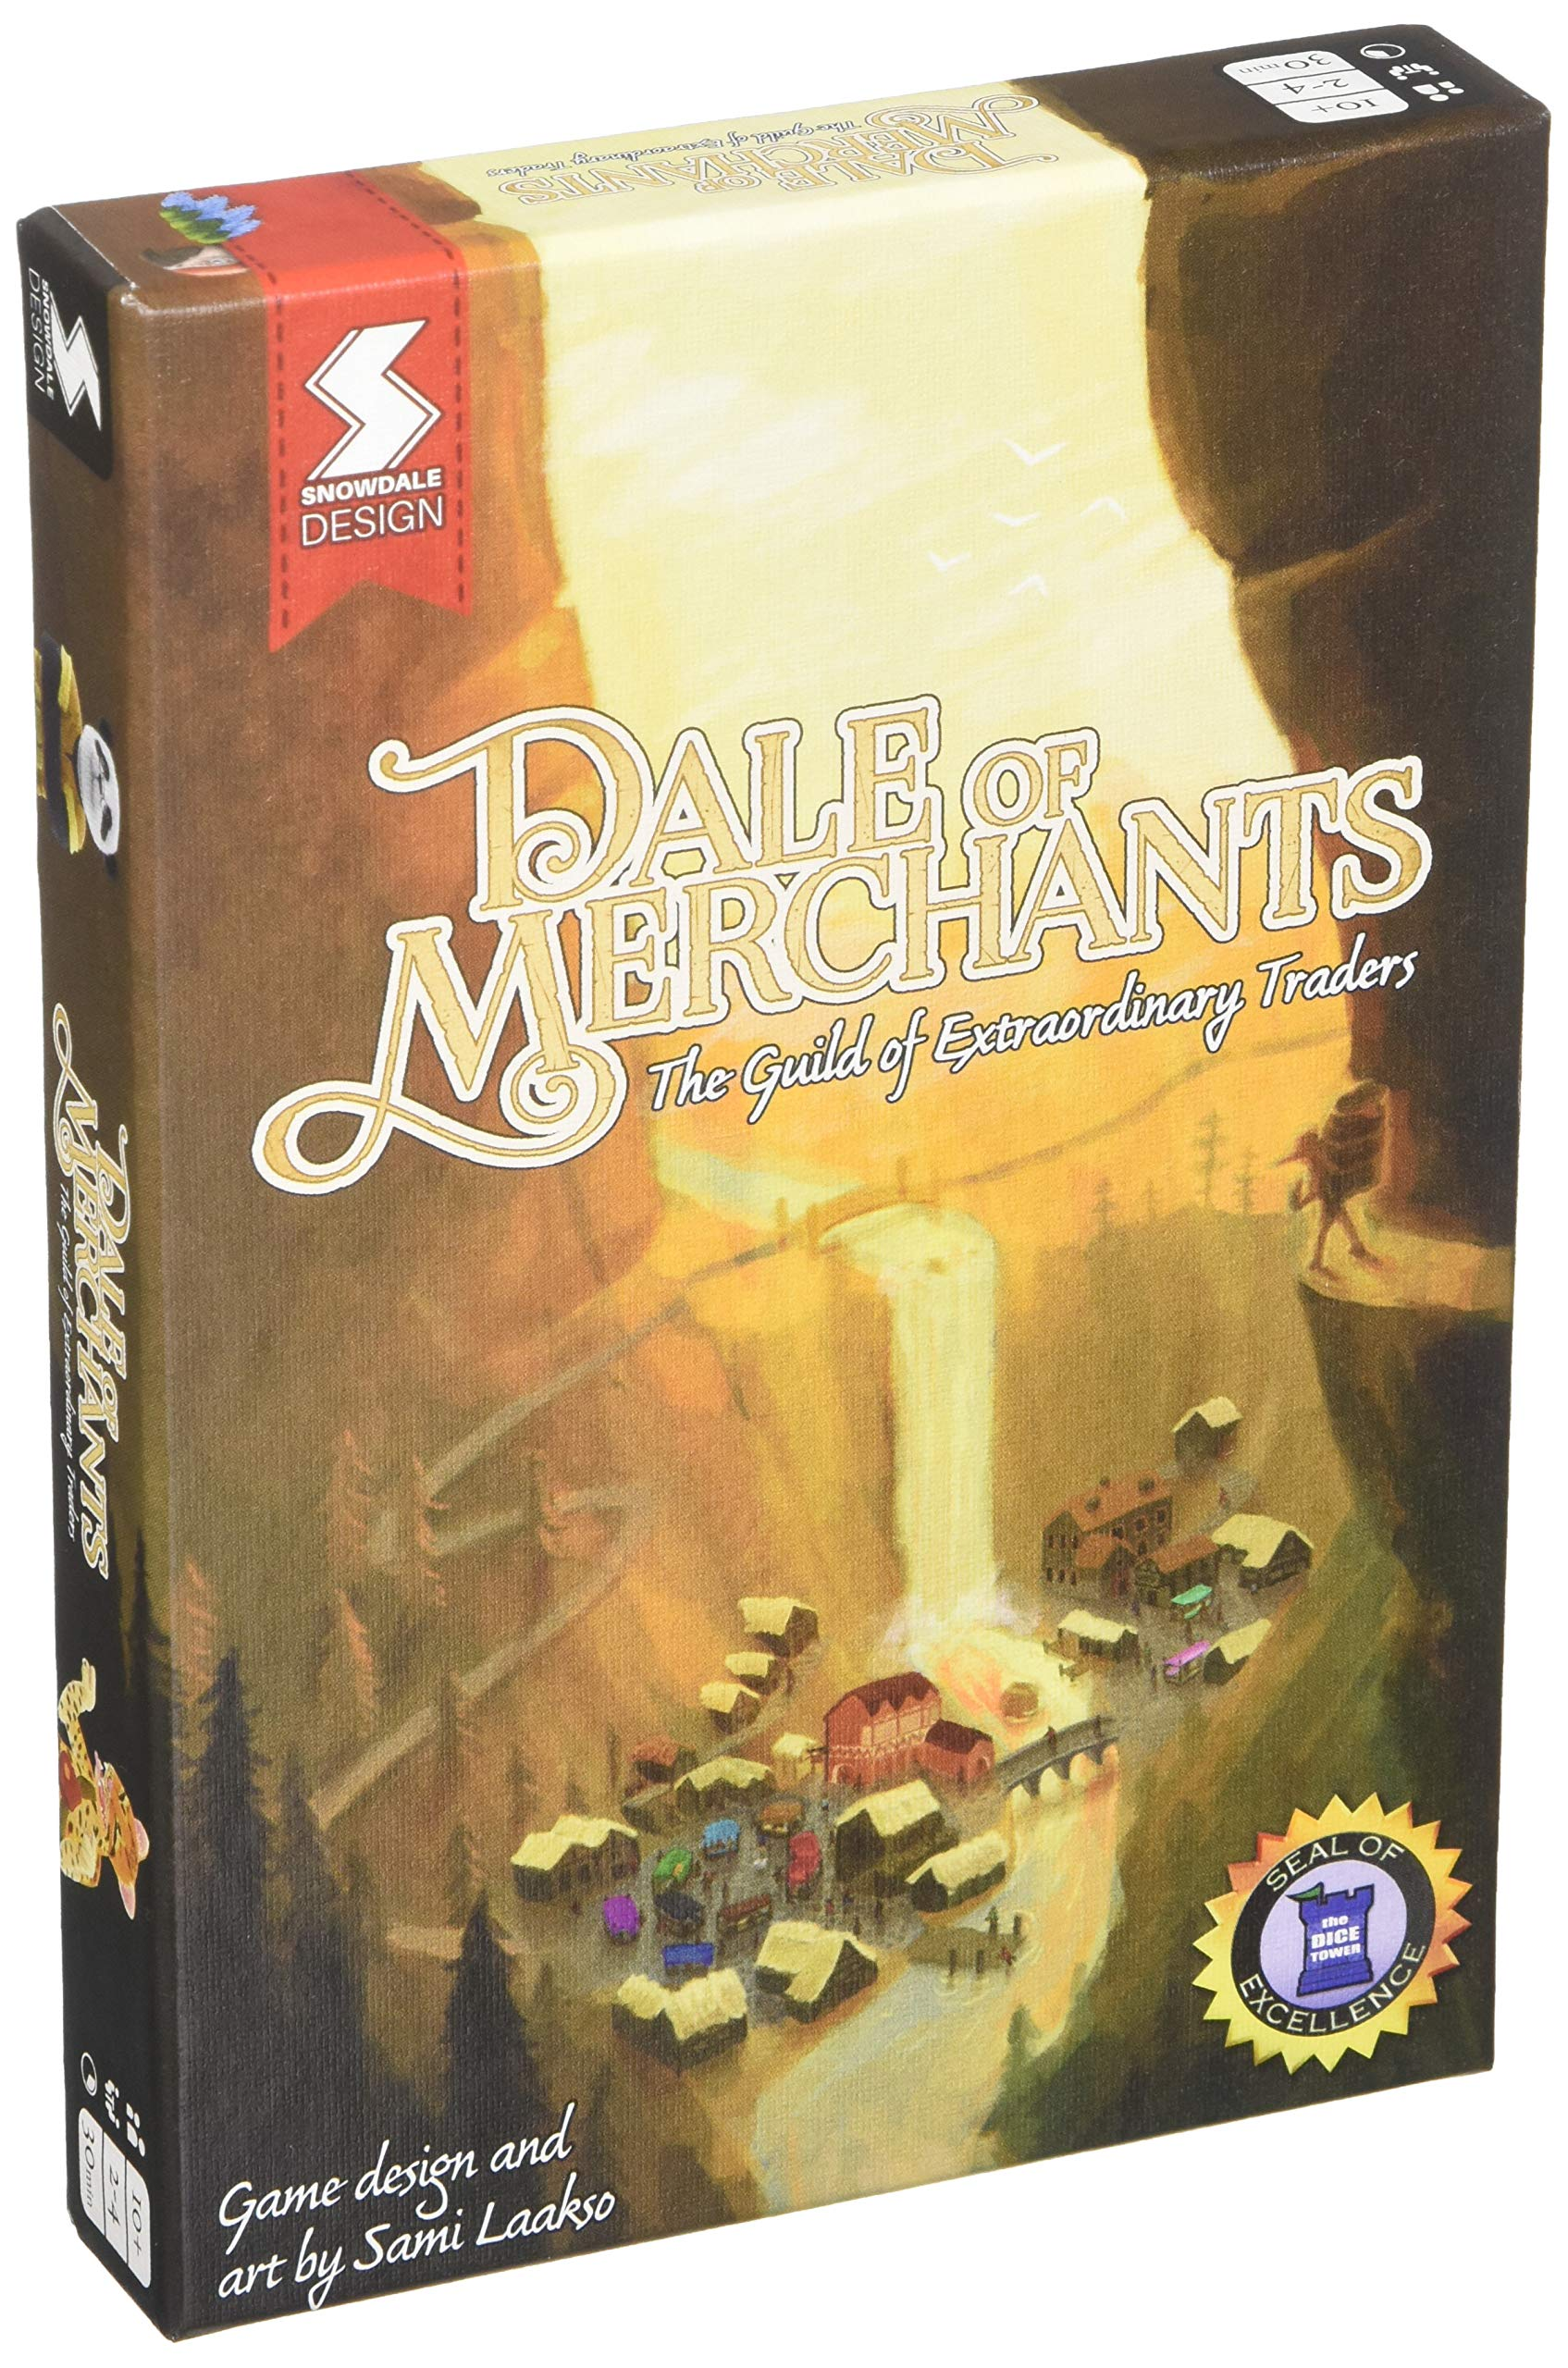 Snowdale Design Dale of Merchants The Guild of Extraordinary Traders Card Games